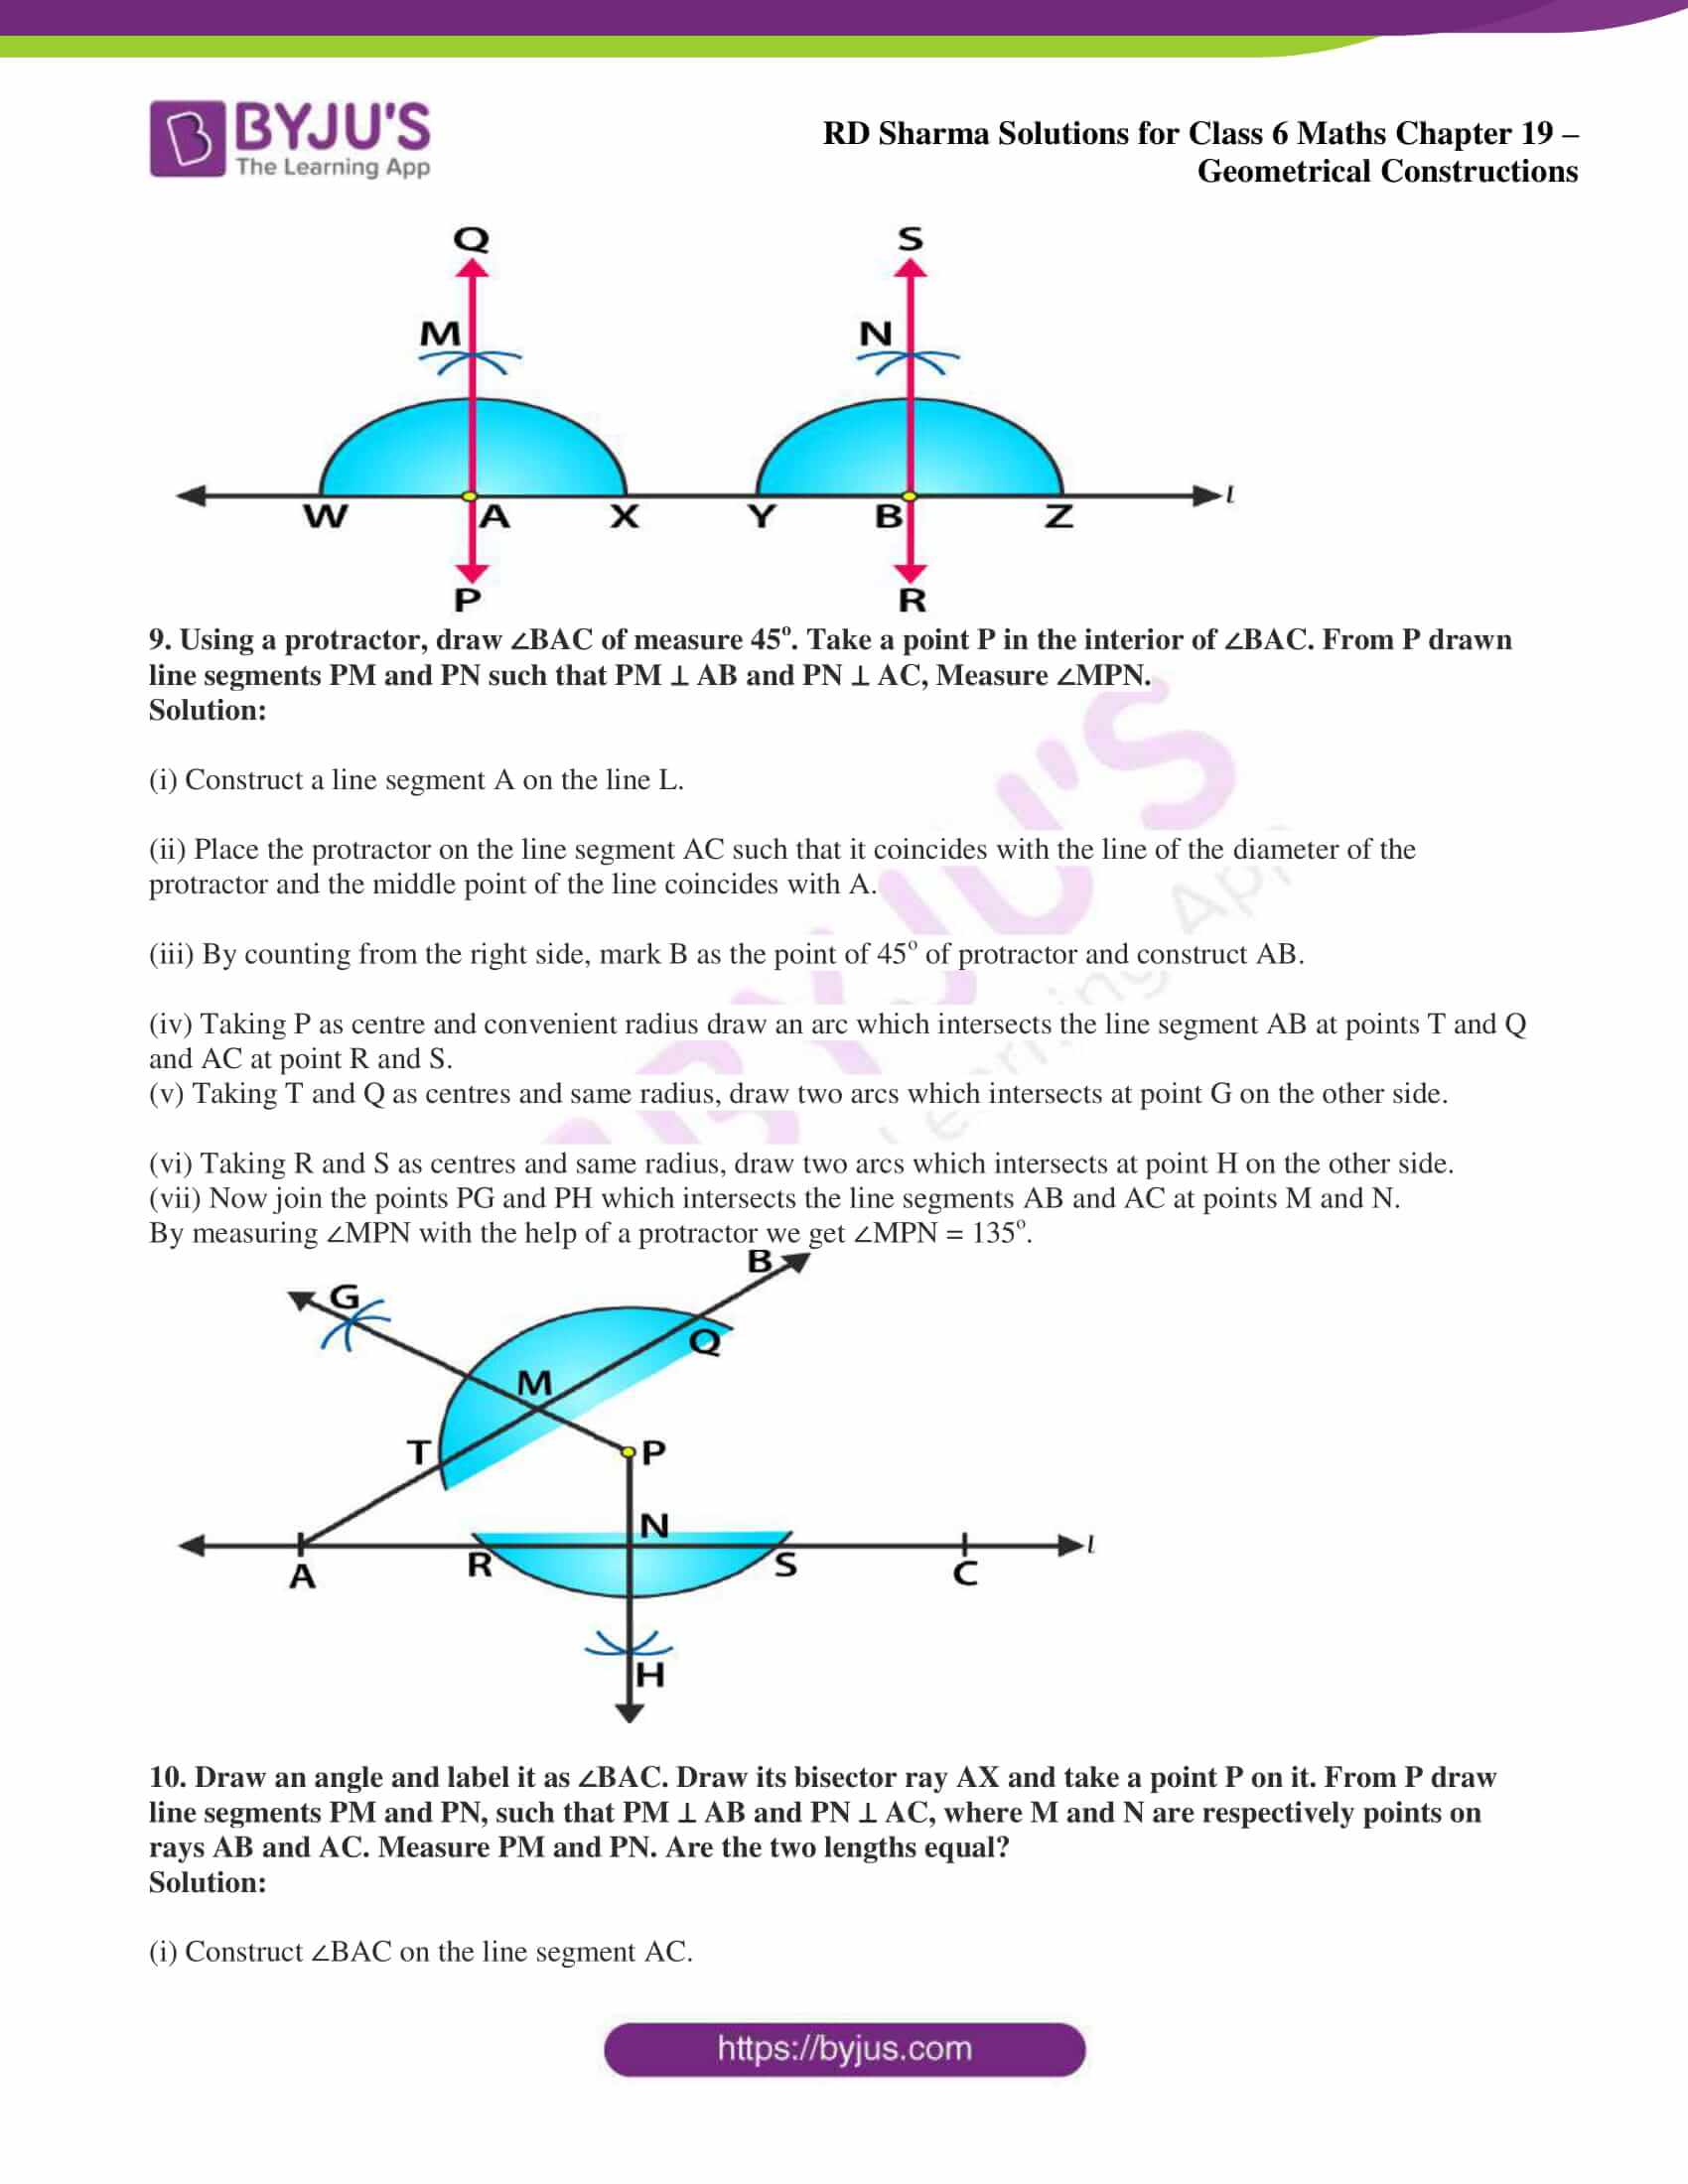 rd sharma solutions nov2020 class 6 maths chapter 19 exercise 2 8